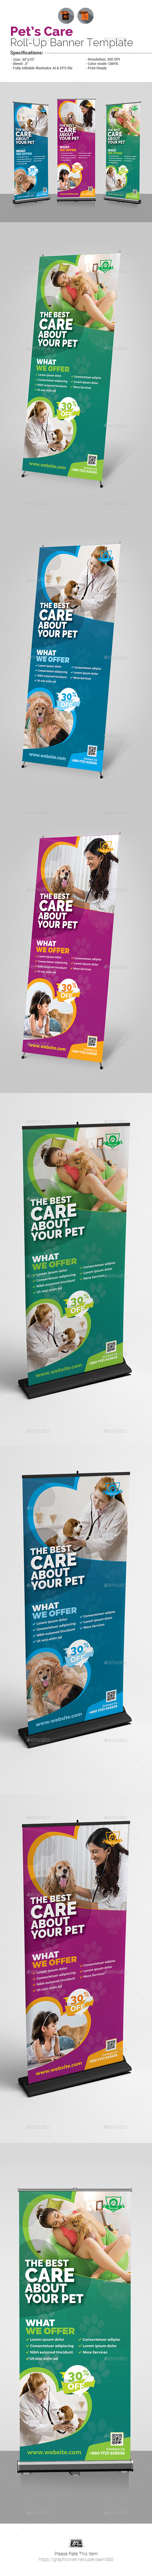 Pets Care Roll-Up Banner - Signage Print Templates